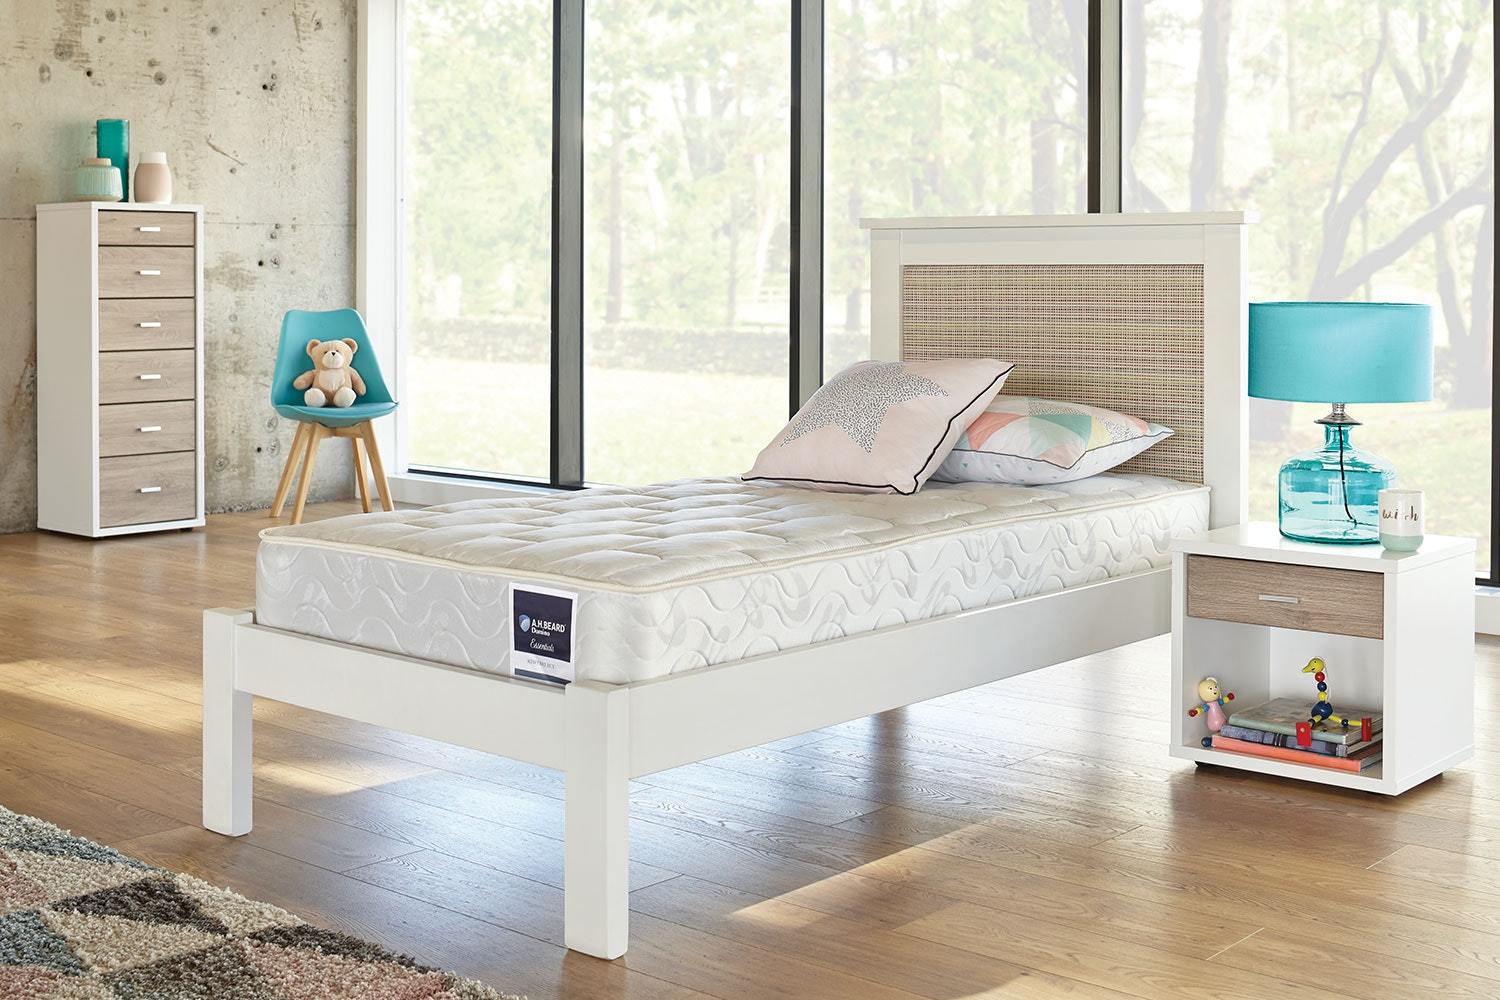 Kiwi Select Queen Mattress by A.H. Beard